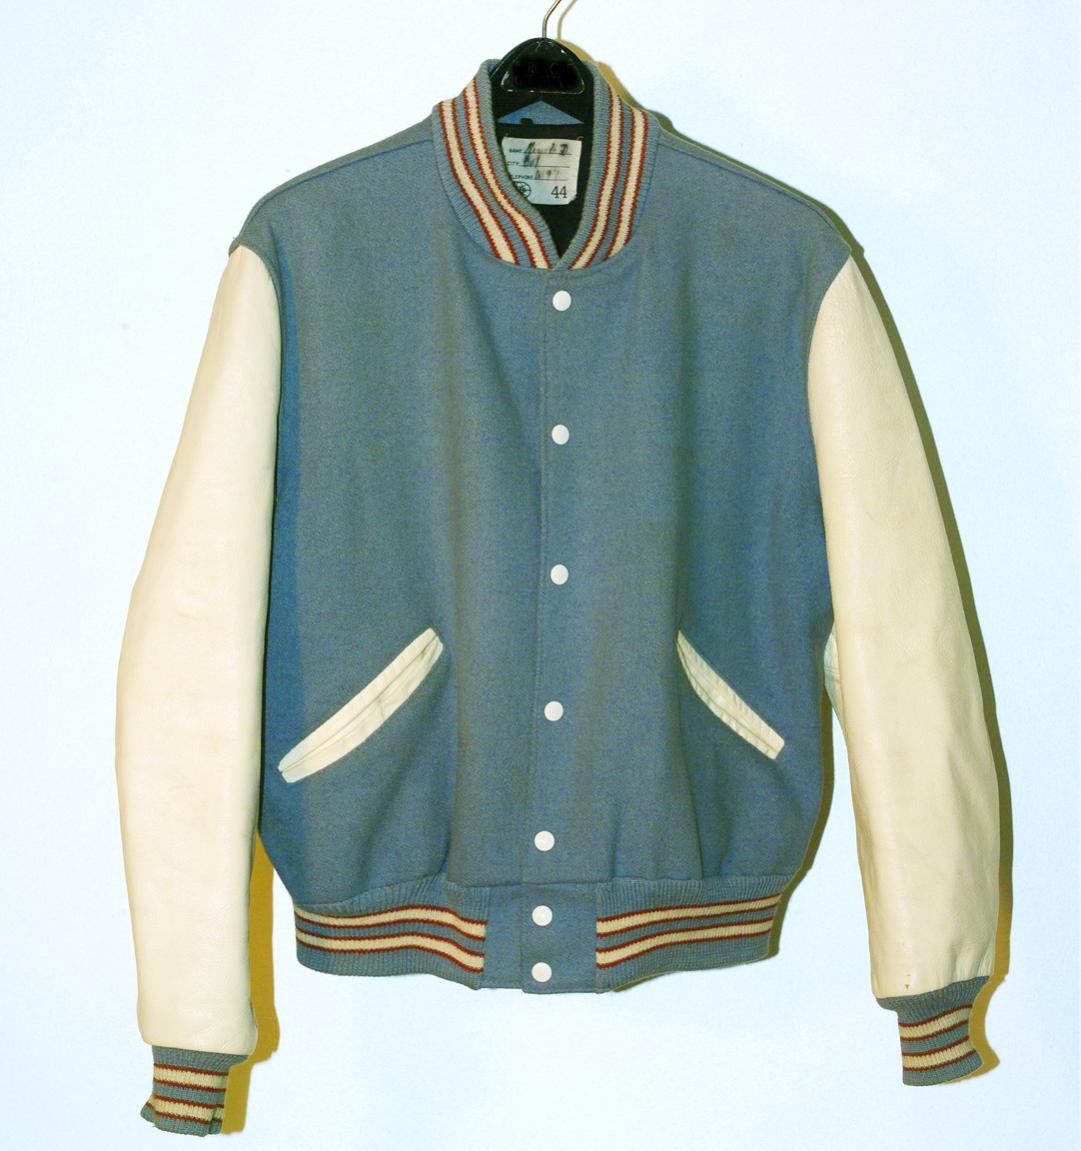 Baseball Jacket Vintage - JacketIn